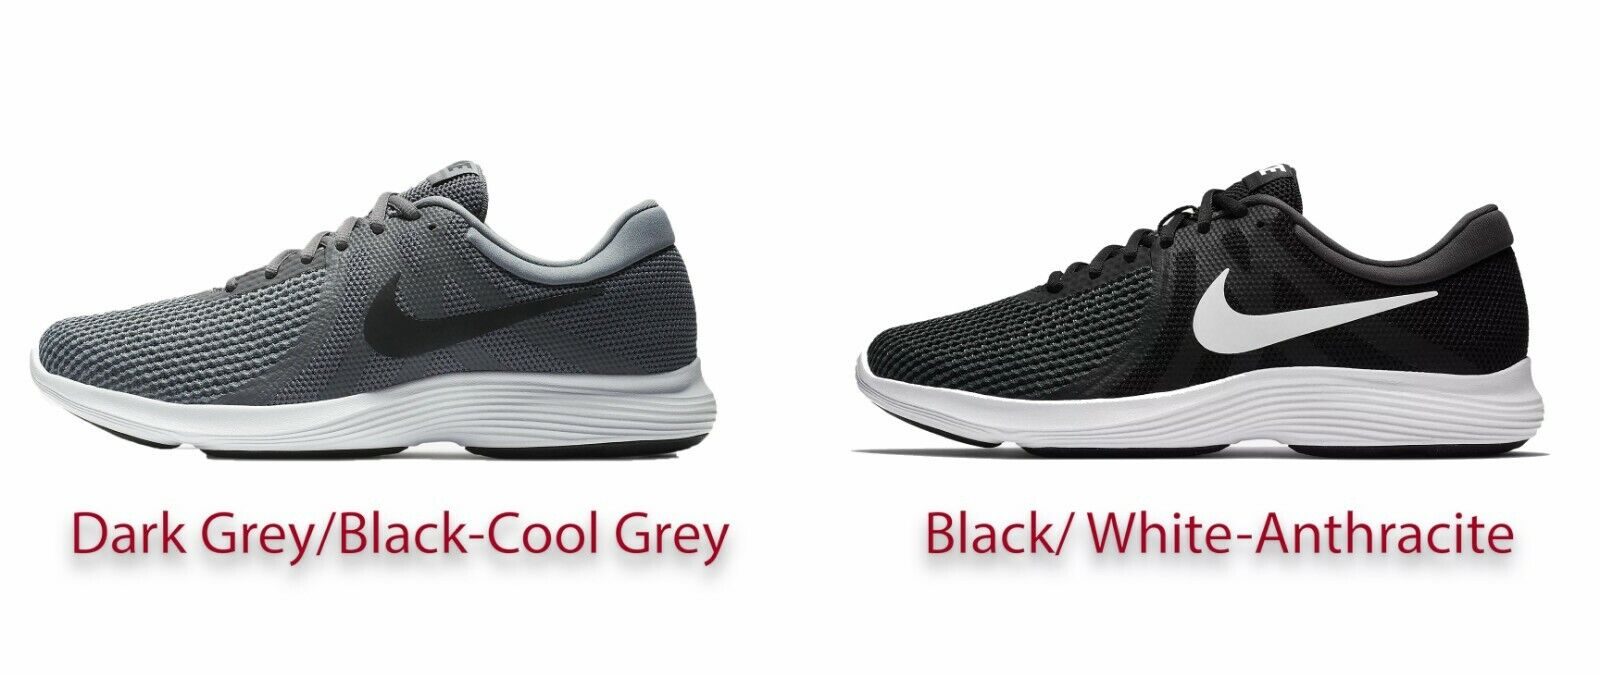 NIKE MEN'S NEW REVOLUTION 4 SHOES IN DIFFERENT COLORS & SIZE